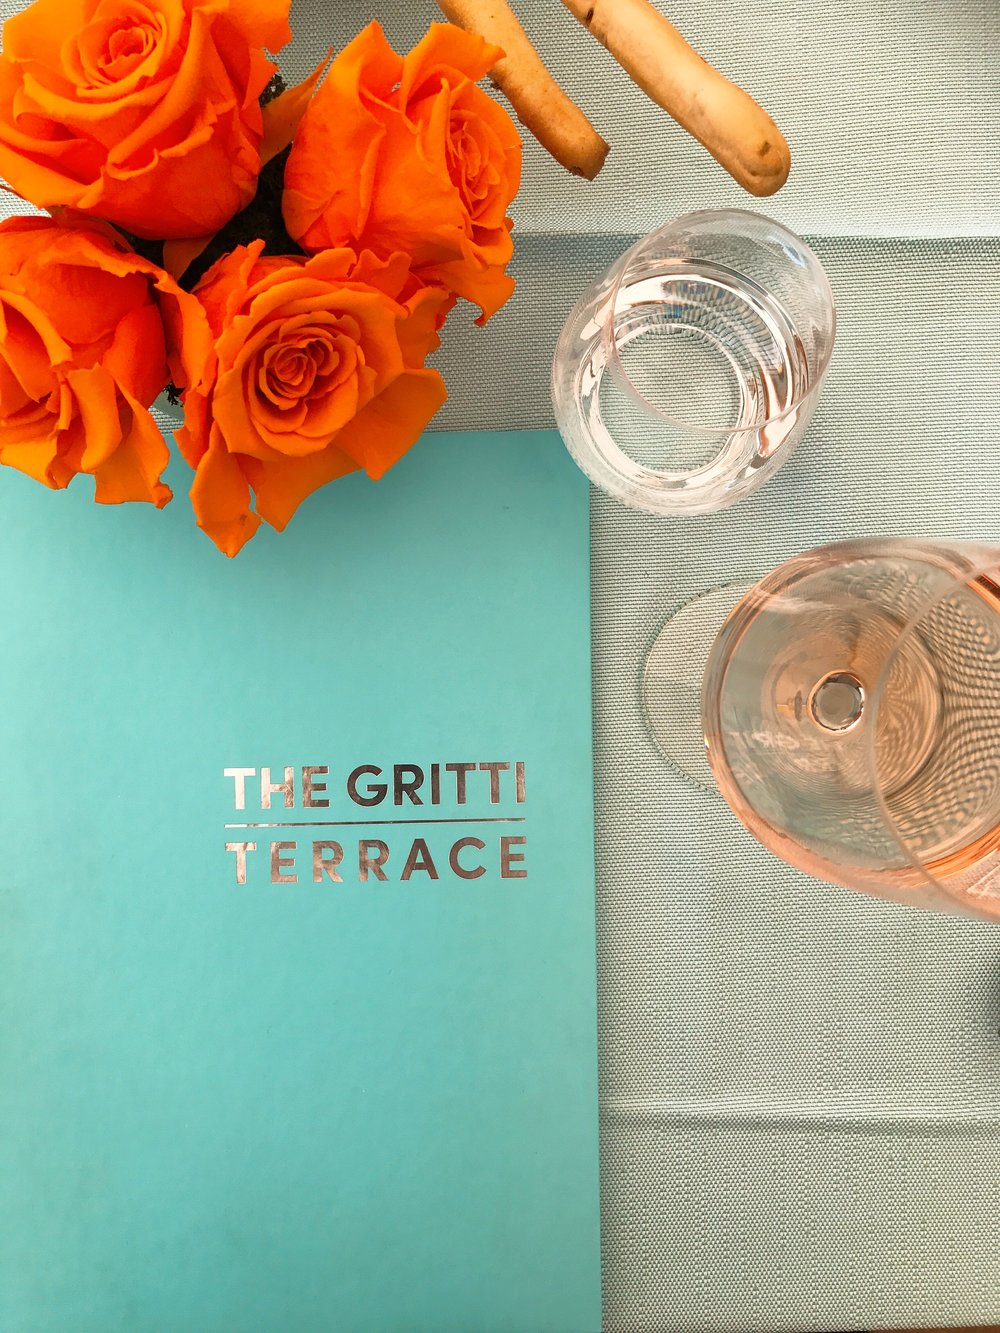 The Gritti Terrace: In love with the vibrant colors used at this restaurant